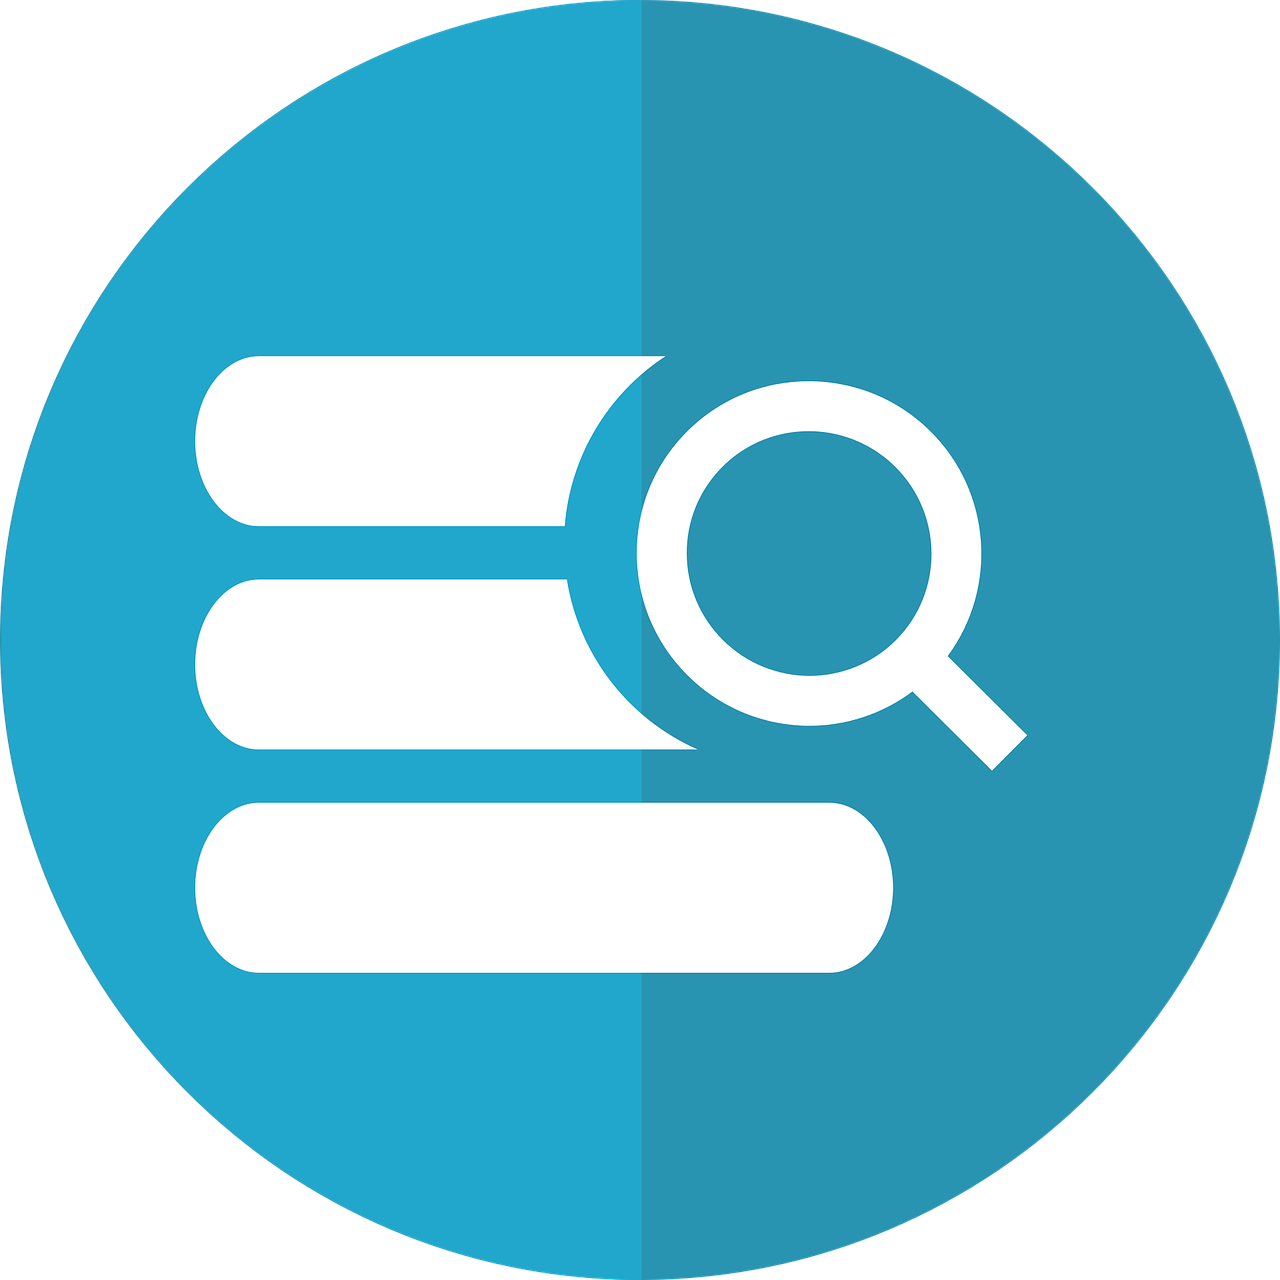 Academic databases - searching for literature